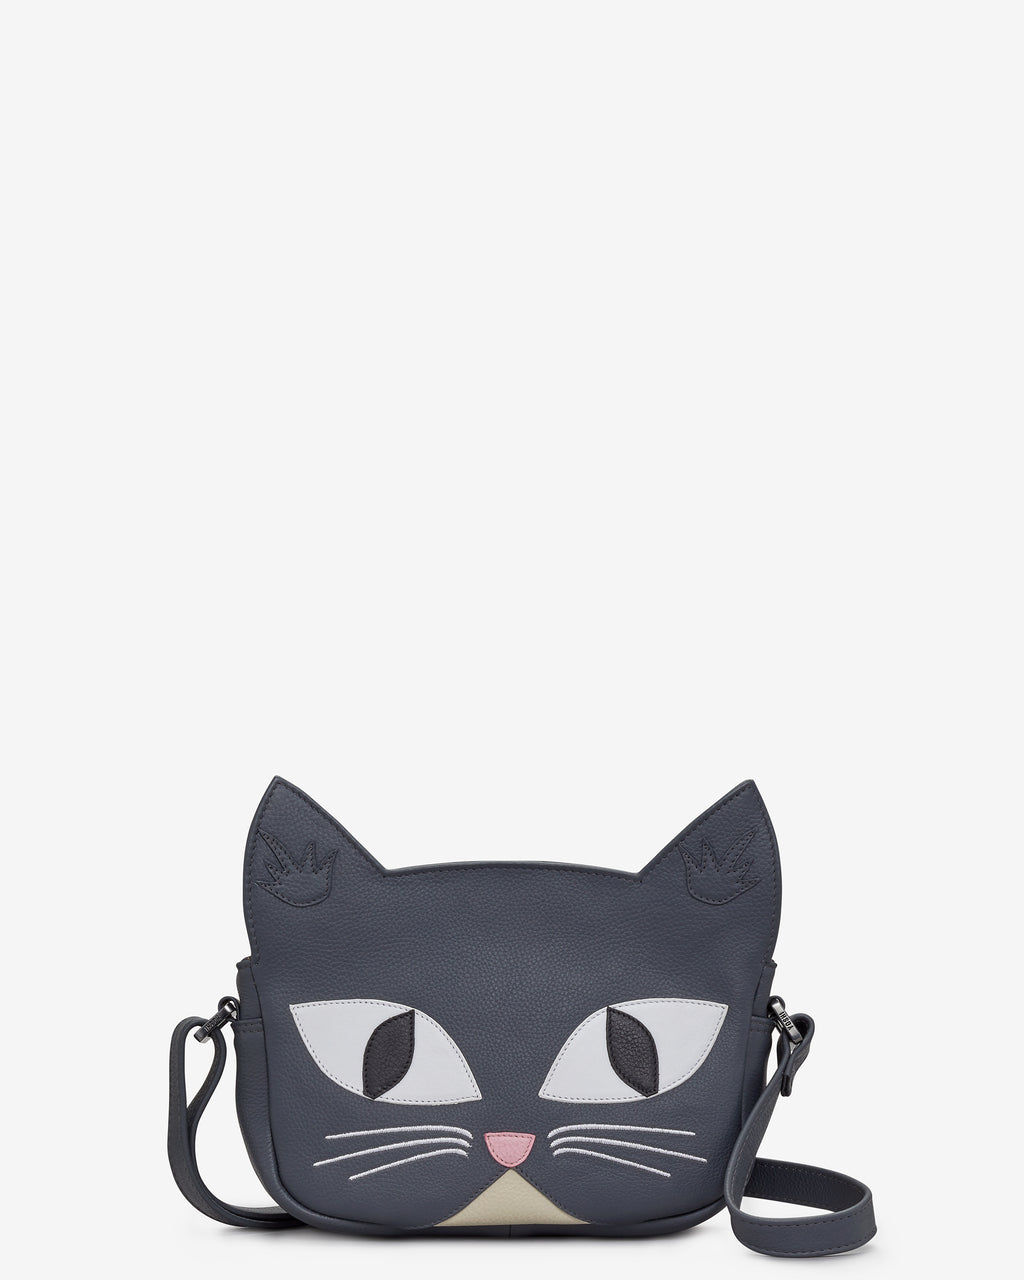 Misty the Cat Grey Leather Cross Body Bag